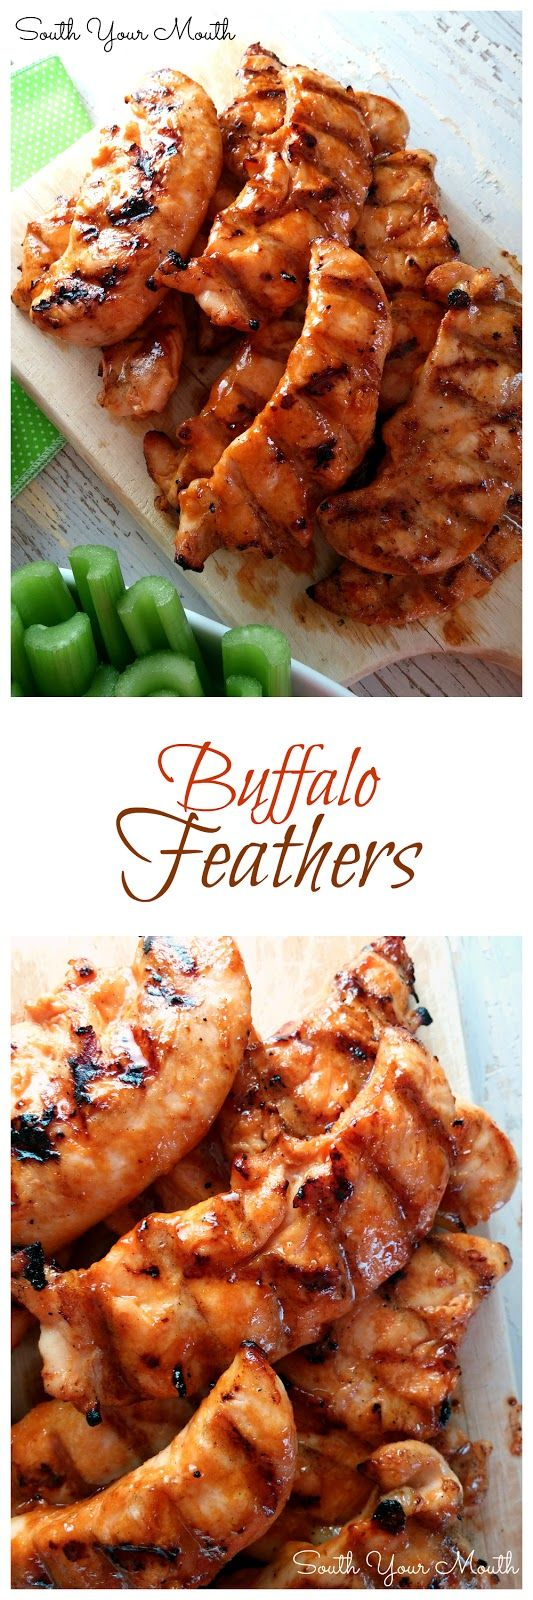 """Buffalo Feathers"" are grilled chicken tenders sauced like wings (similar to Wild Wing Cafe's). This recipe for wing sauce has just enough brown sugar to balance the acidic pepper sauce without being cloyingly sweet and the soy sauce gives it another layer of flavor. I think I might have found my new favorite wing sauce recipe! FOR REAL! So good!"